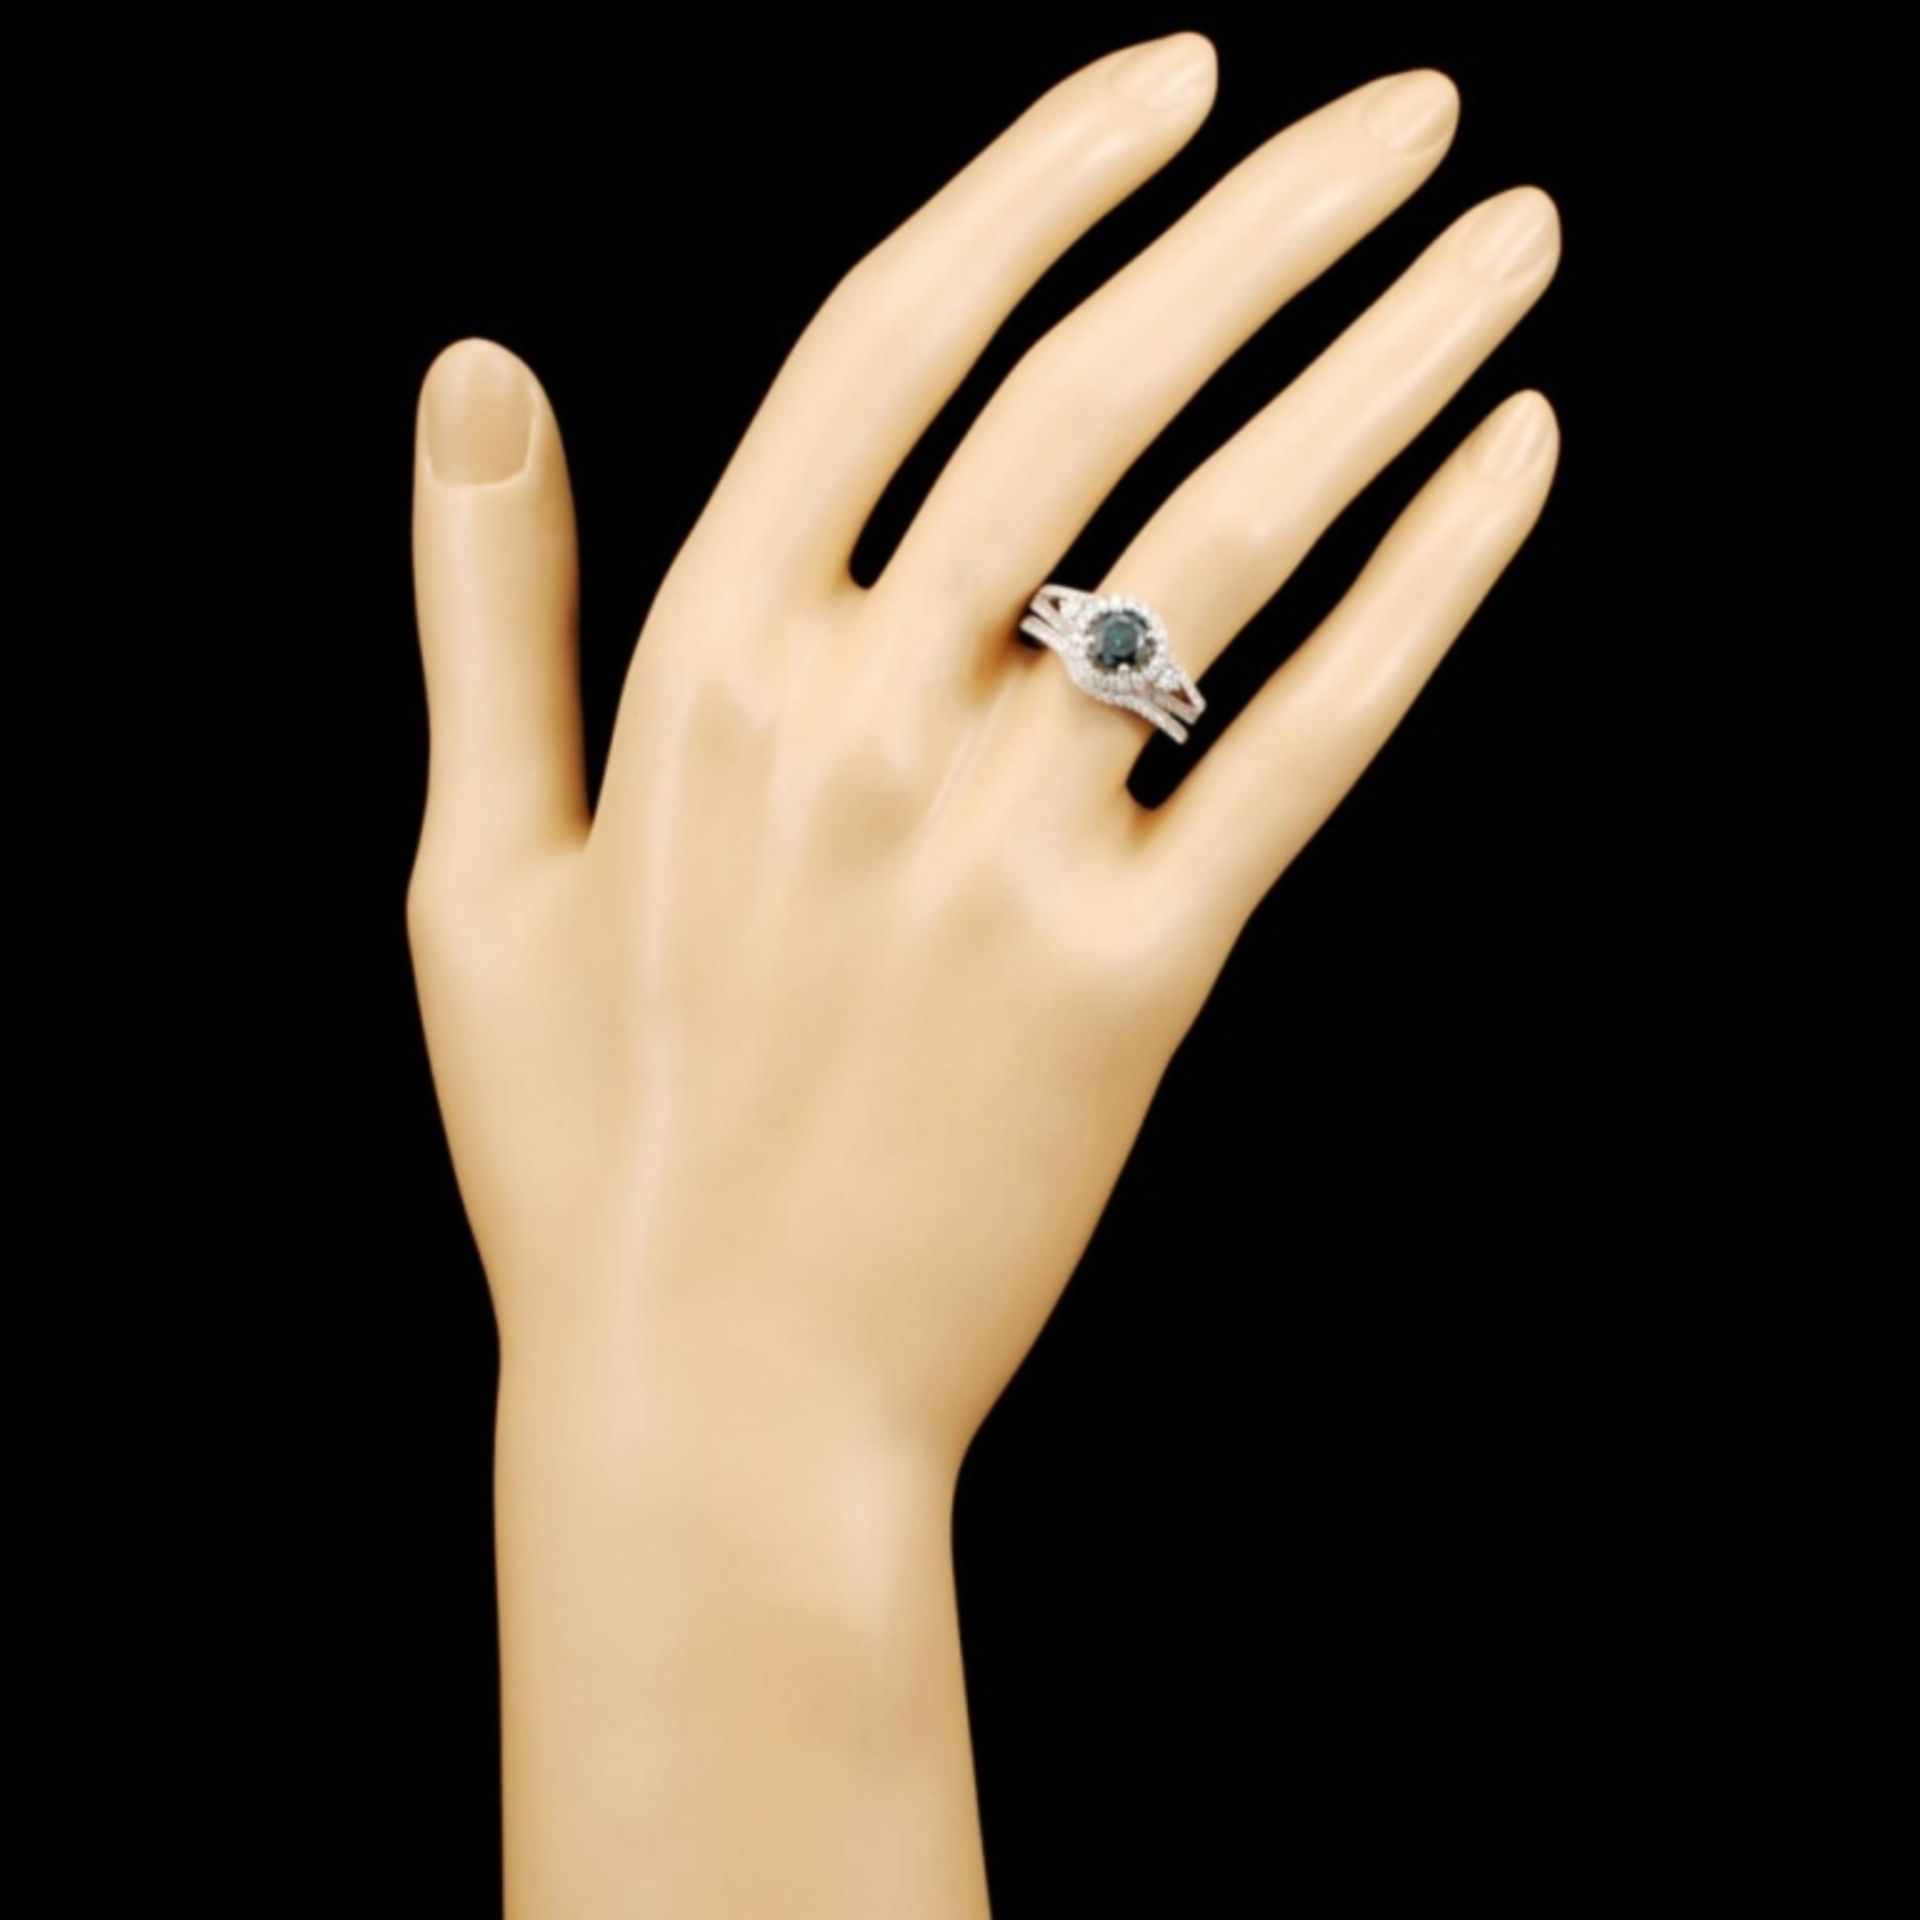 18K Gold 1.47ctw Fancy Color Diamond Ring - Image 4 of 5